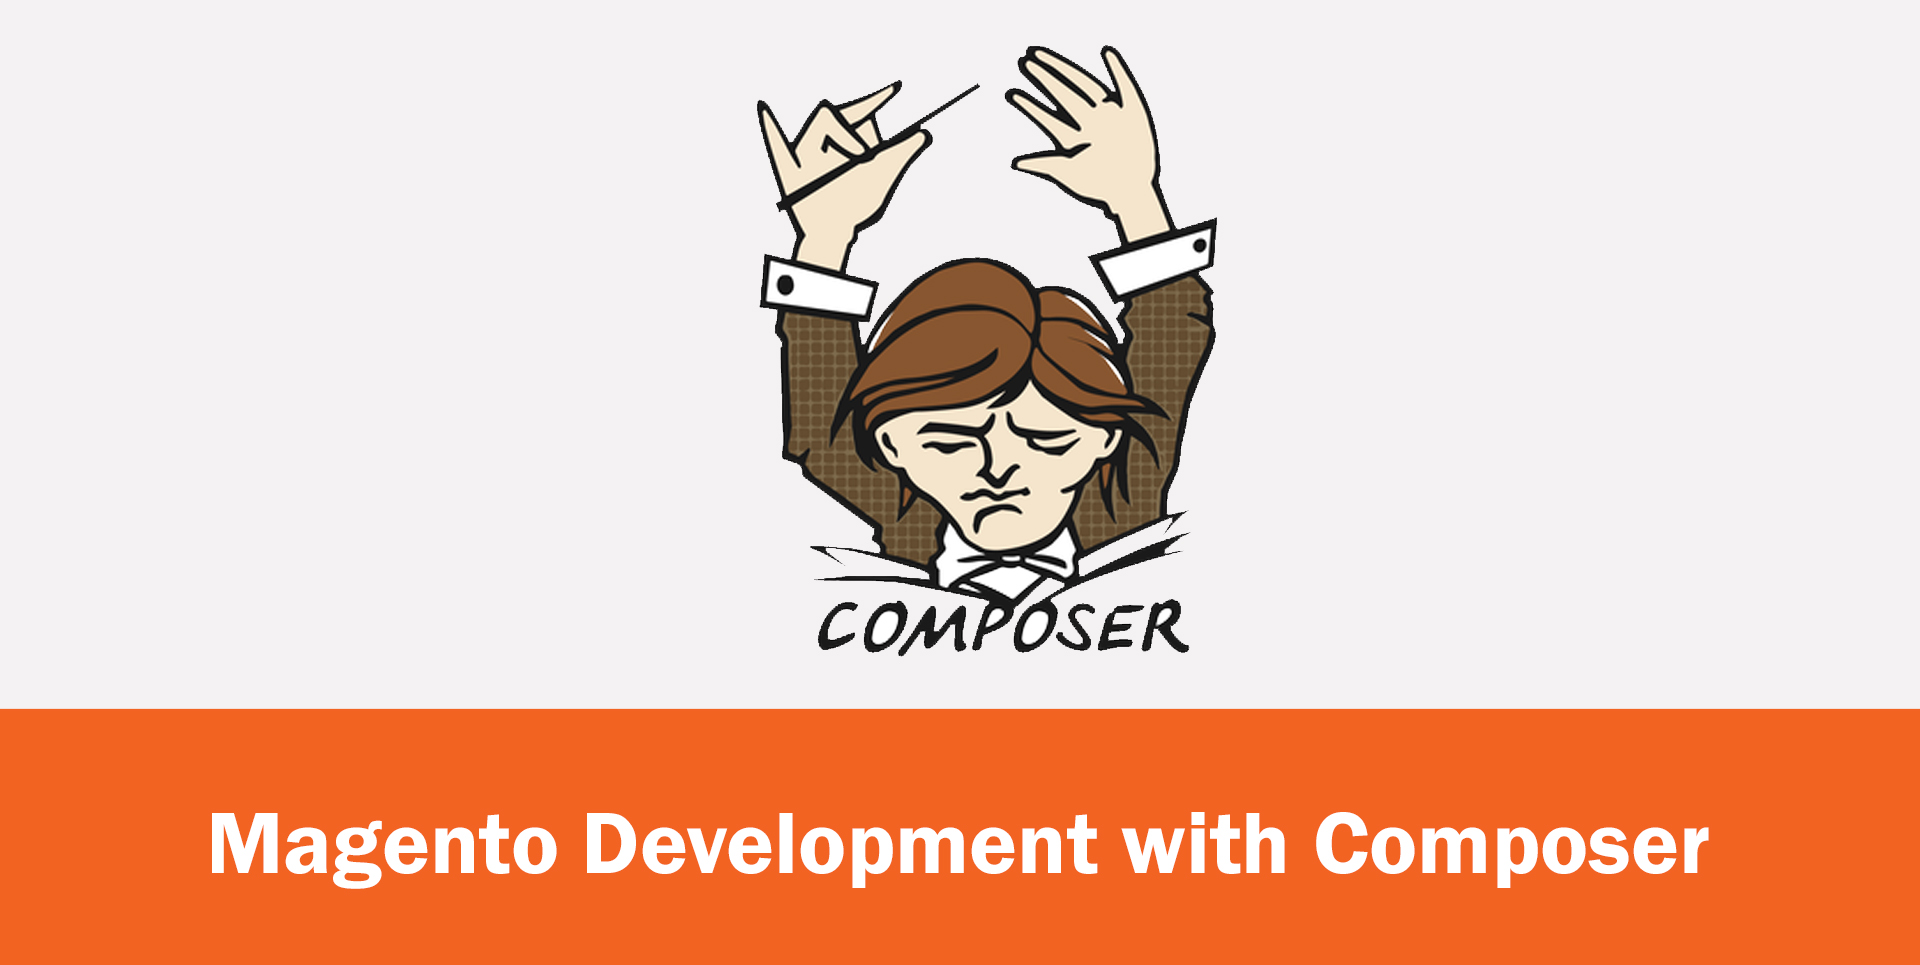 Magento Development With Composer